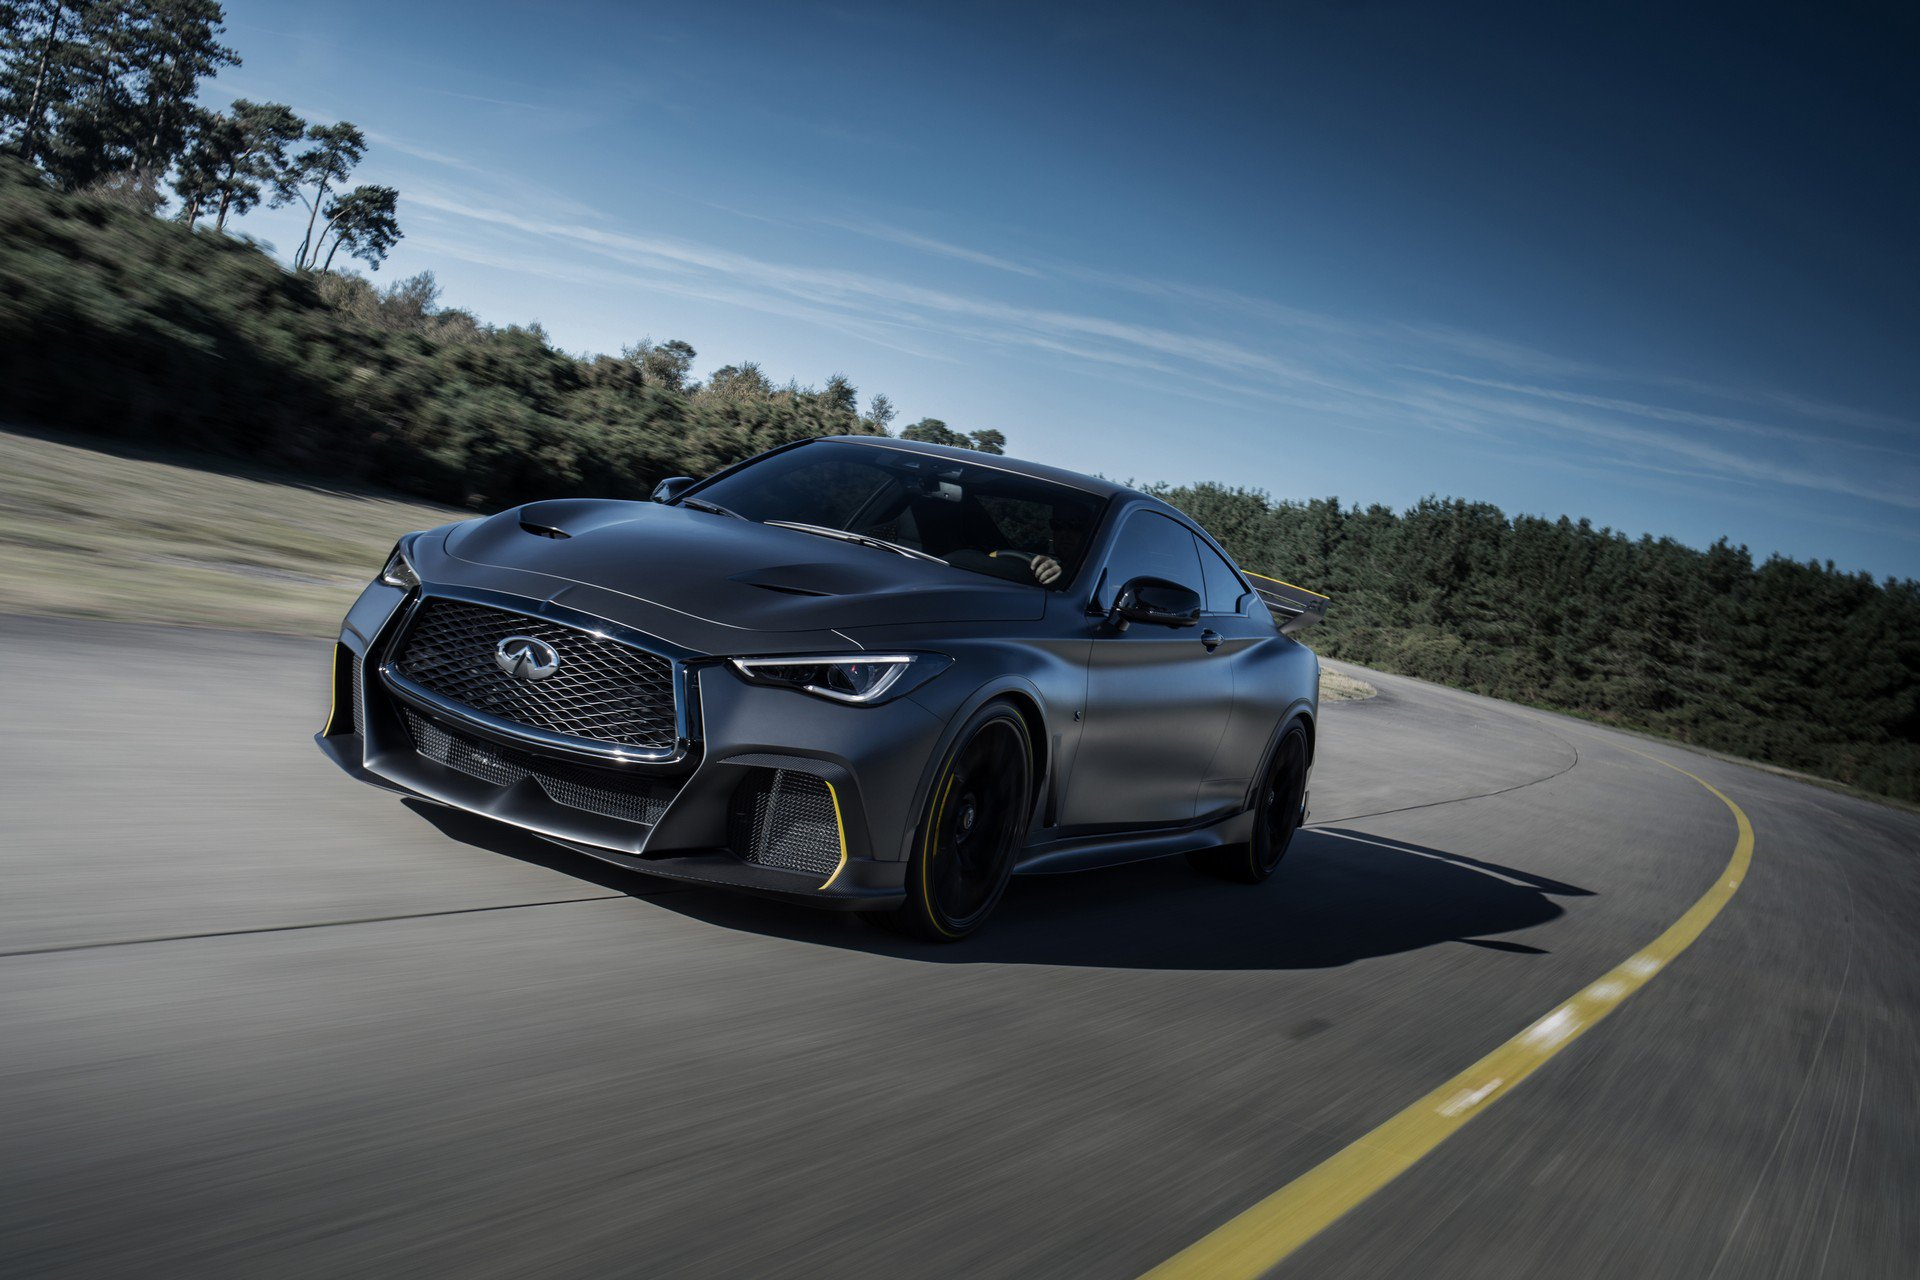 Infiniti Project Black S Prototype (31)